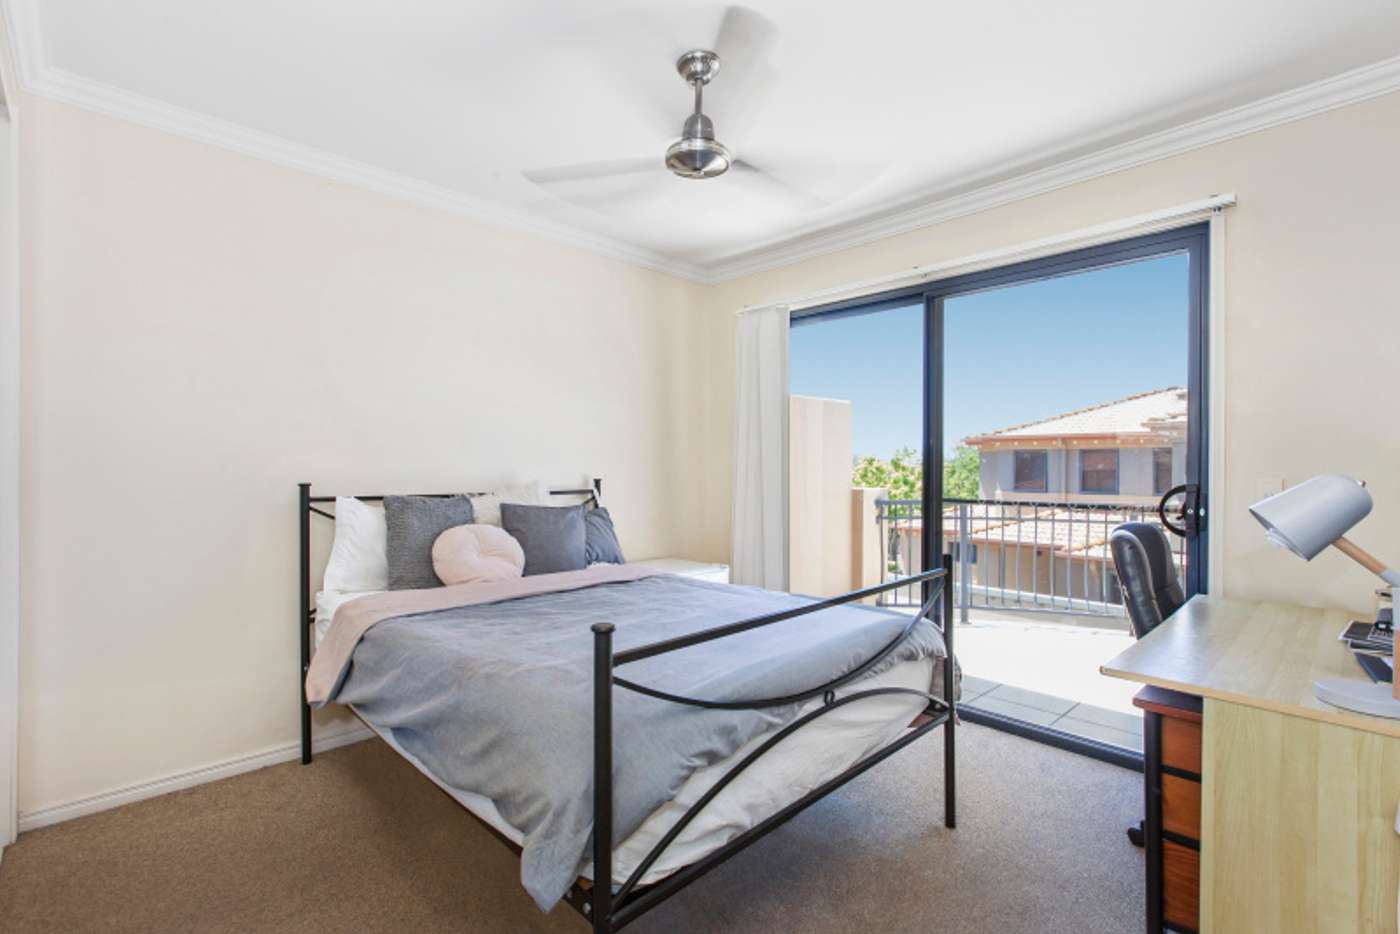 Sixth view of Homely house listing, 112/4 University Drive, Robina QLD 4226